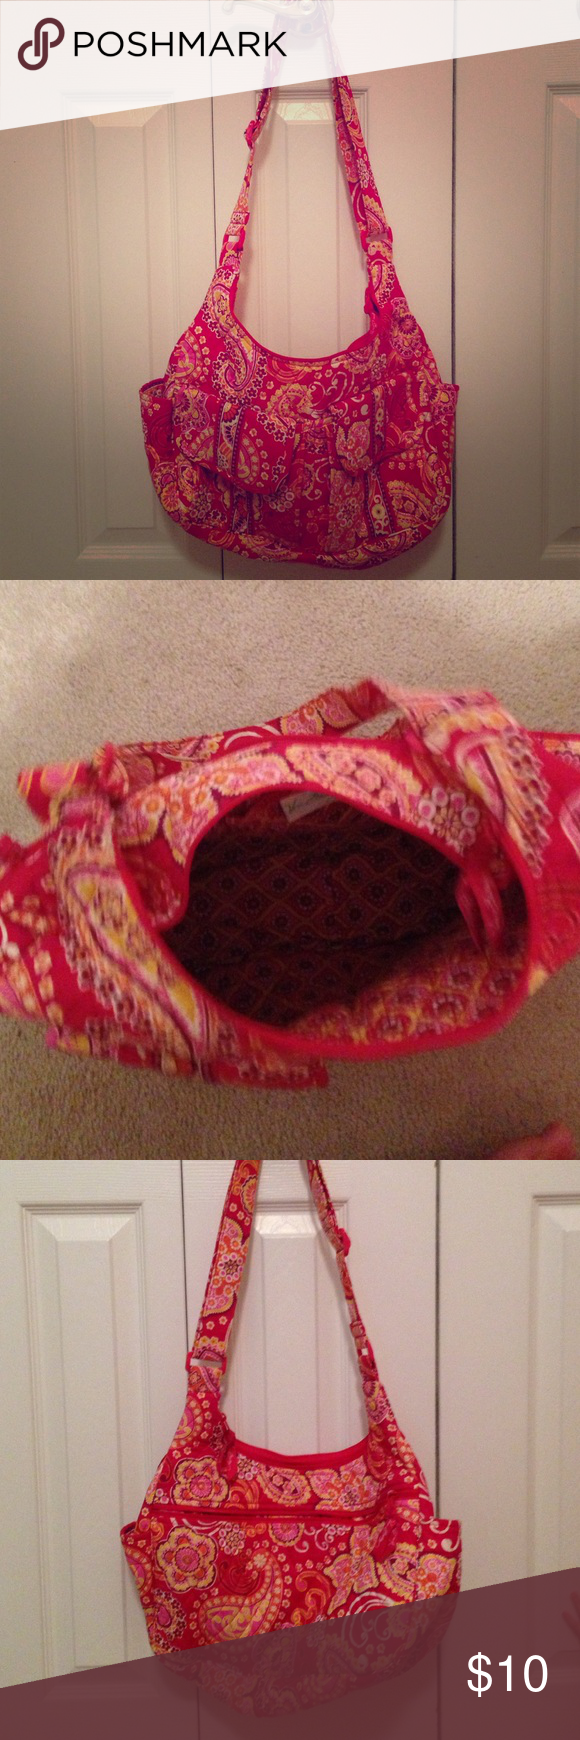 Vera Bradley Hobo bag Used Vera Bradley hobo bag.  Has some wear on it, but no tears - which is the reason I've priced it at $10.  Bag is a good everyday purse.  In a smoke free home. Vera Bradley Bags Hobos